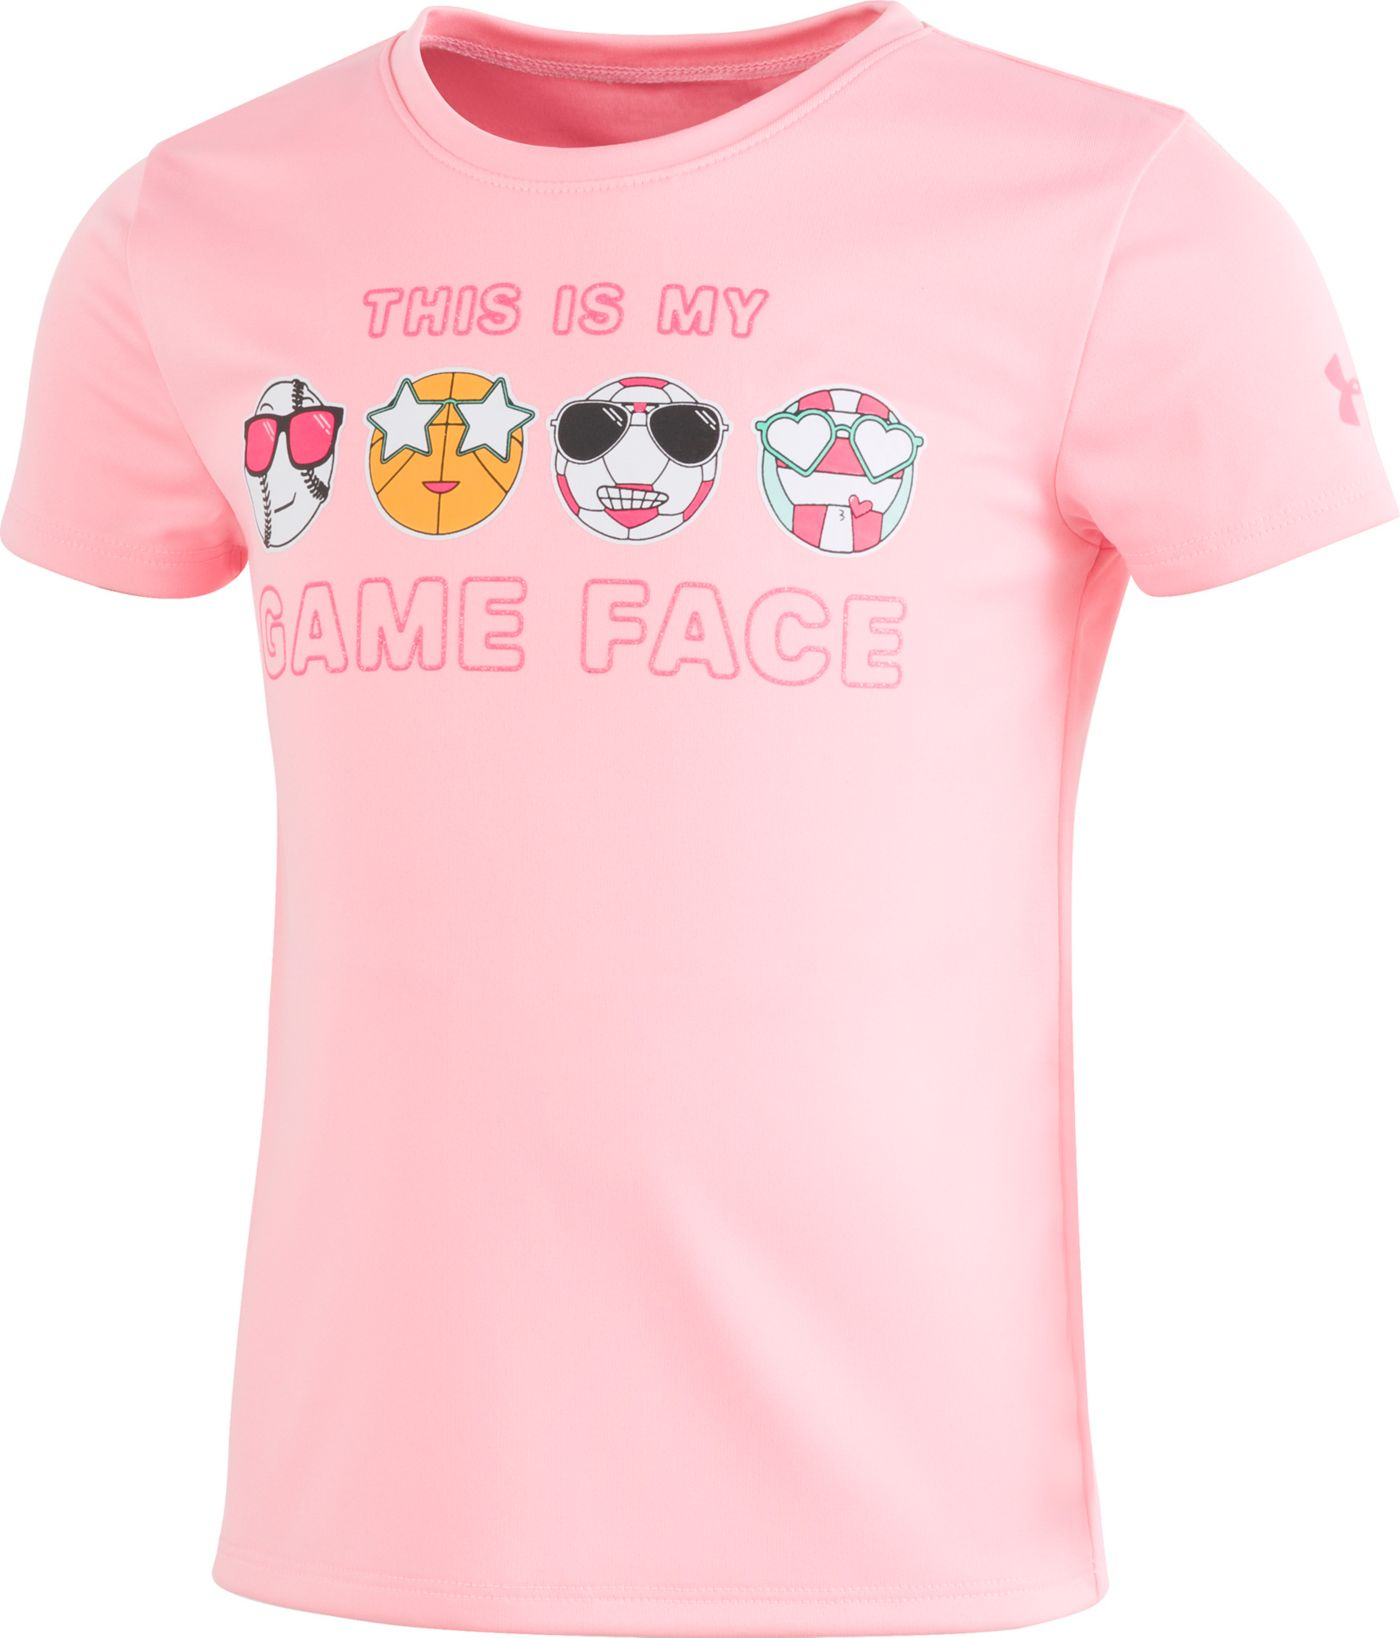 Under Armour Little Girls' Game Face Graphic T-Shirt